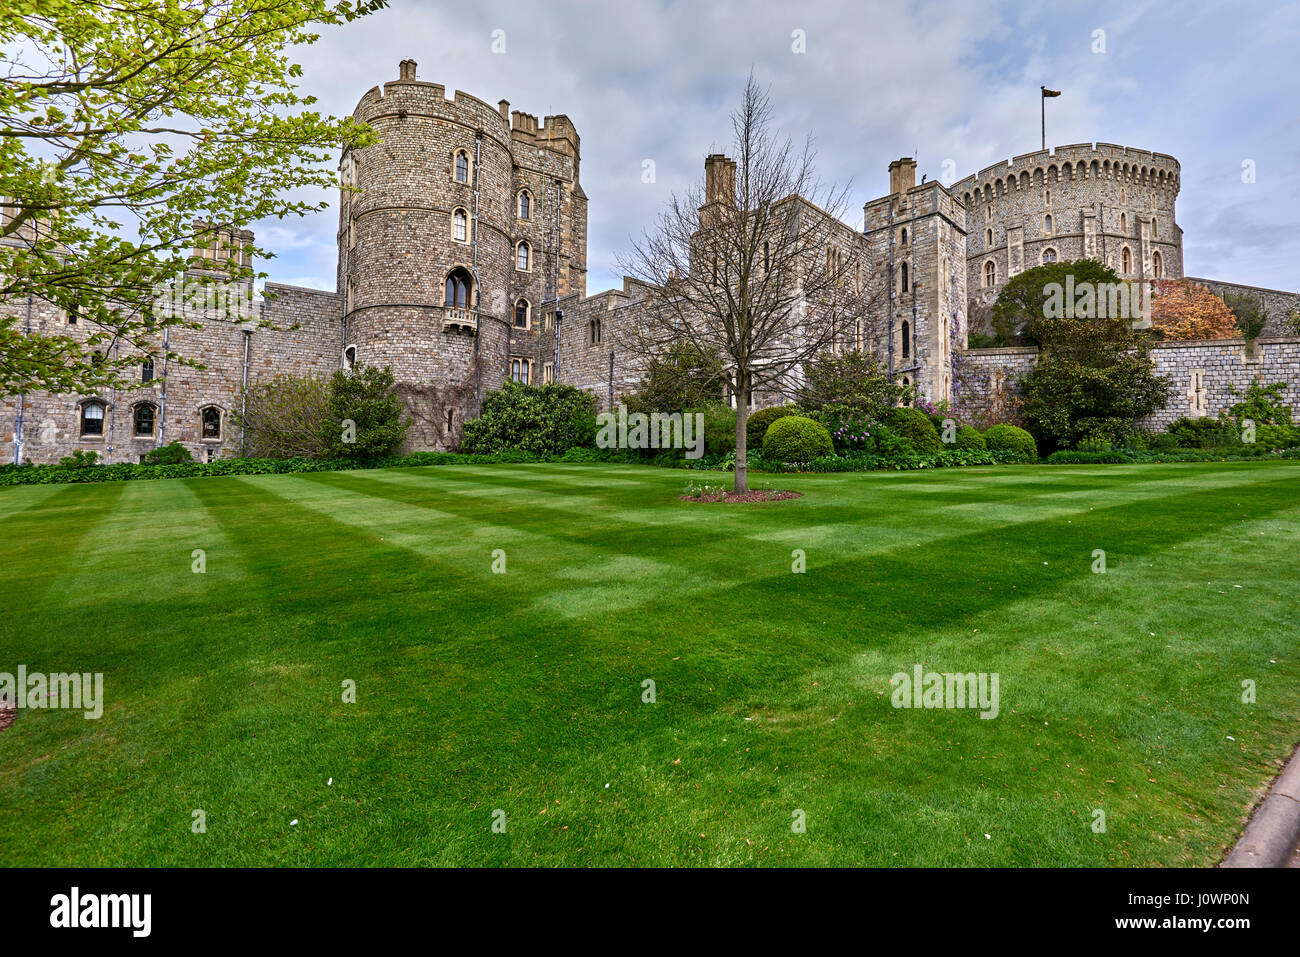 Windsor Castle is a royal residence at Windsor in the English county of Berkshire - Stock Image